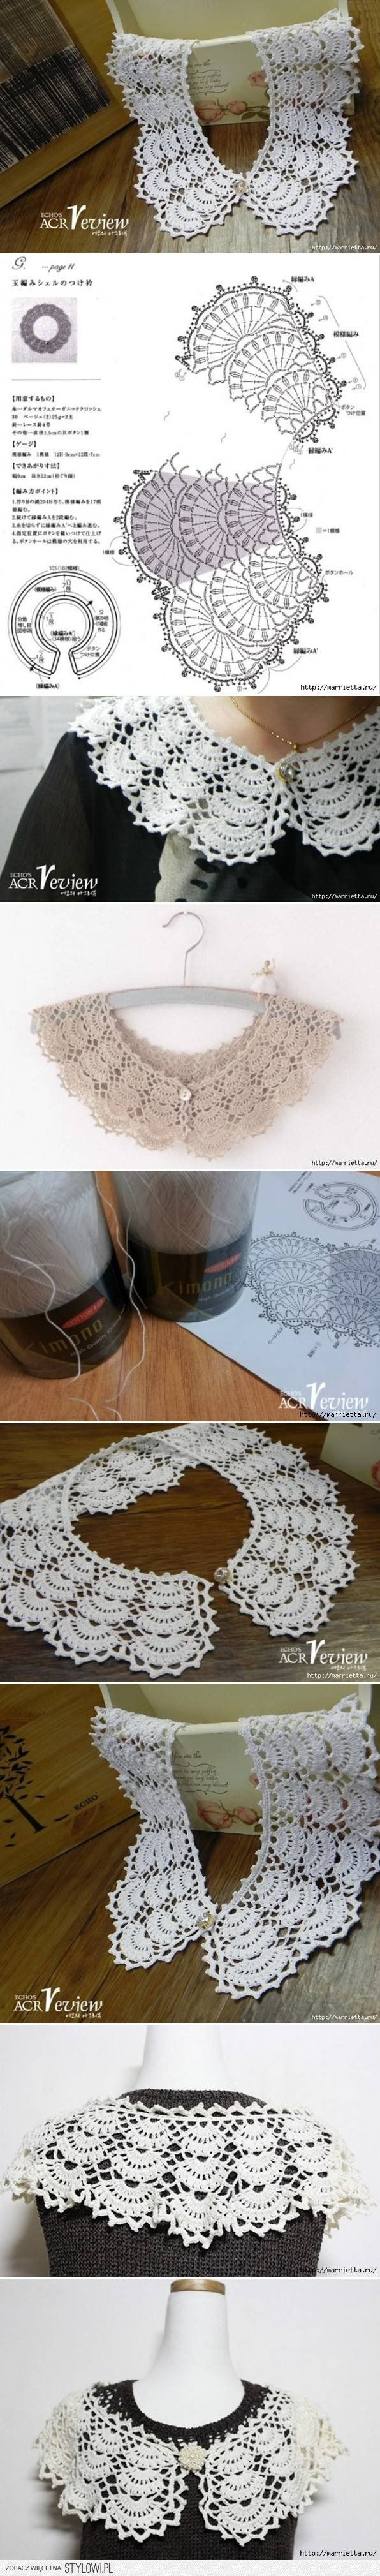 DIY Crochet Collar